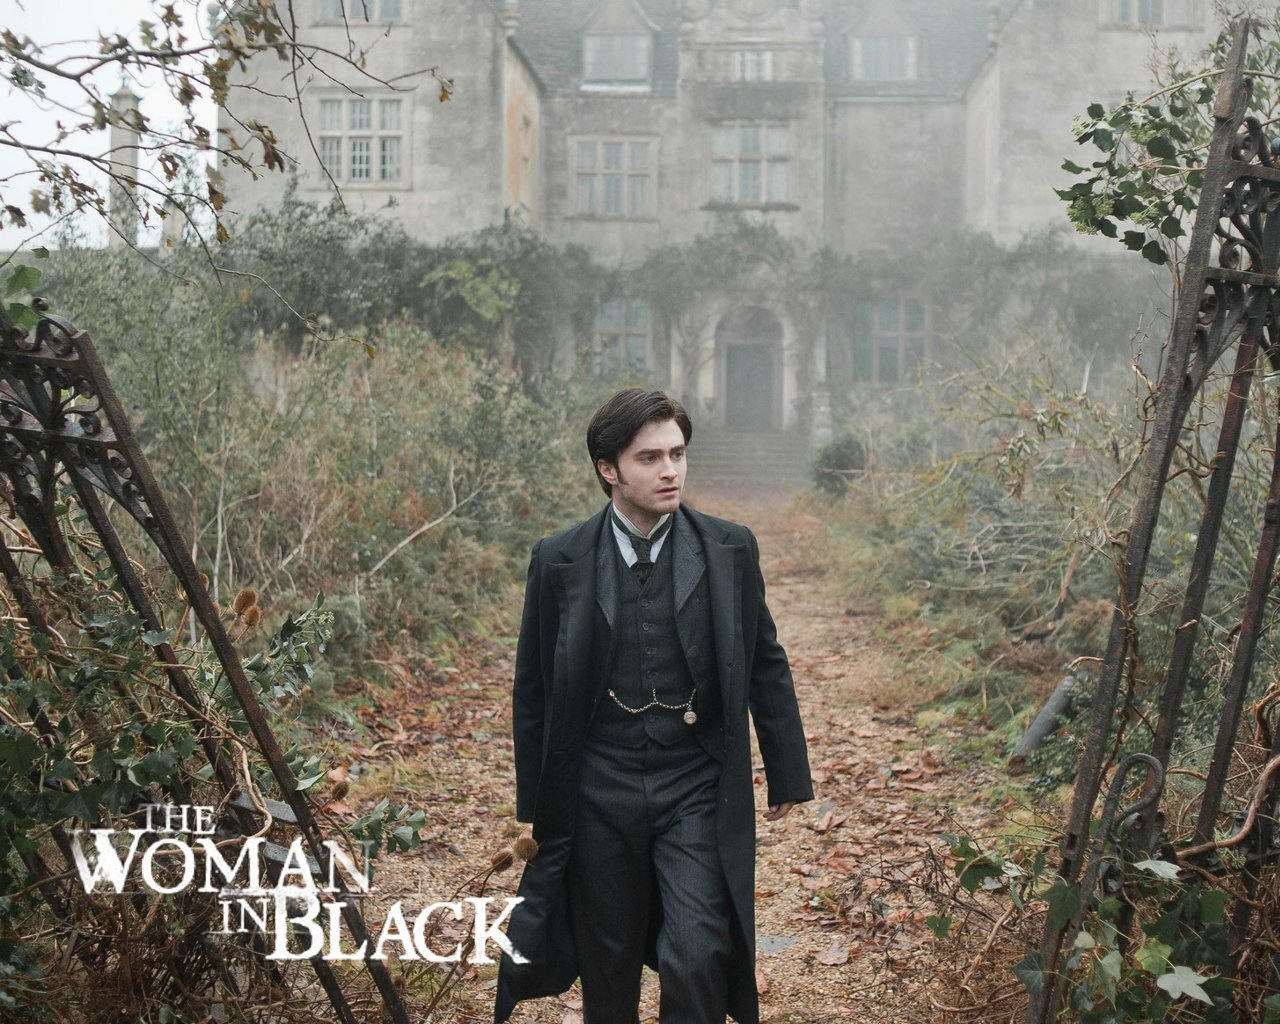 the woman in black movie wallpapers - The Woman in Black Wallpapers